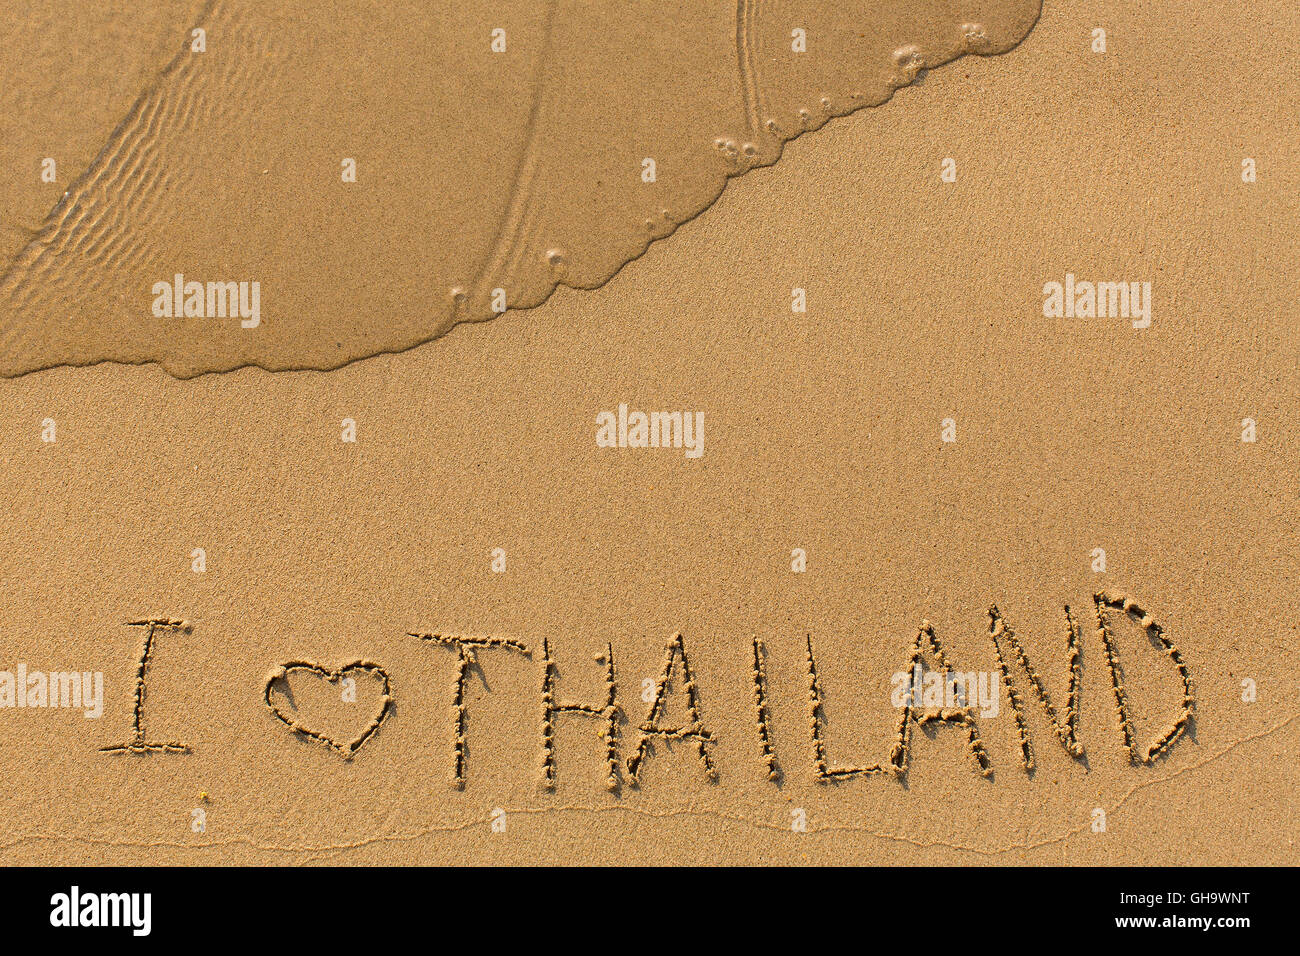 I love Thailand - inscription on a golden sand beach with a gentle surf. - Stock Image